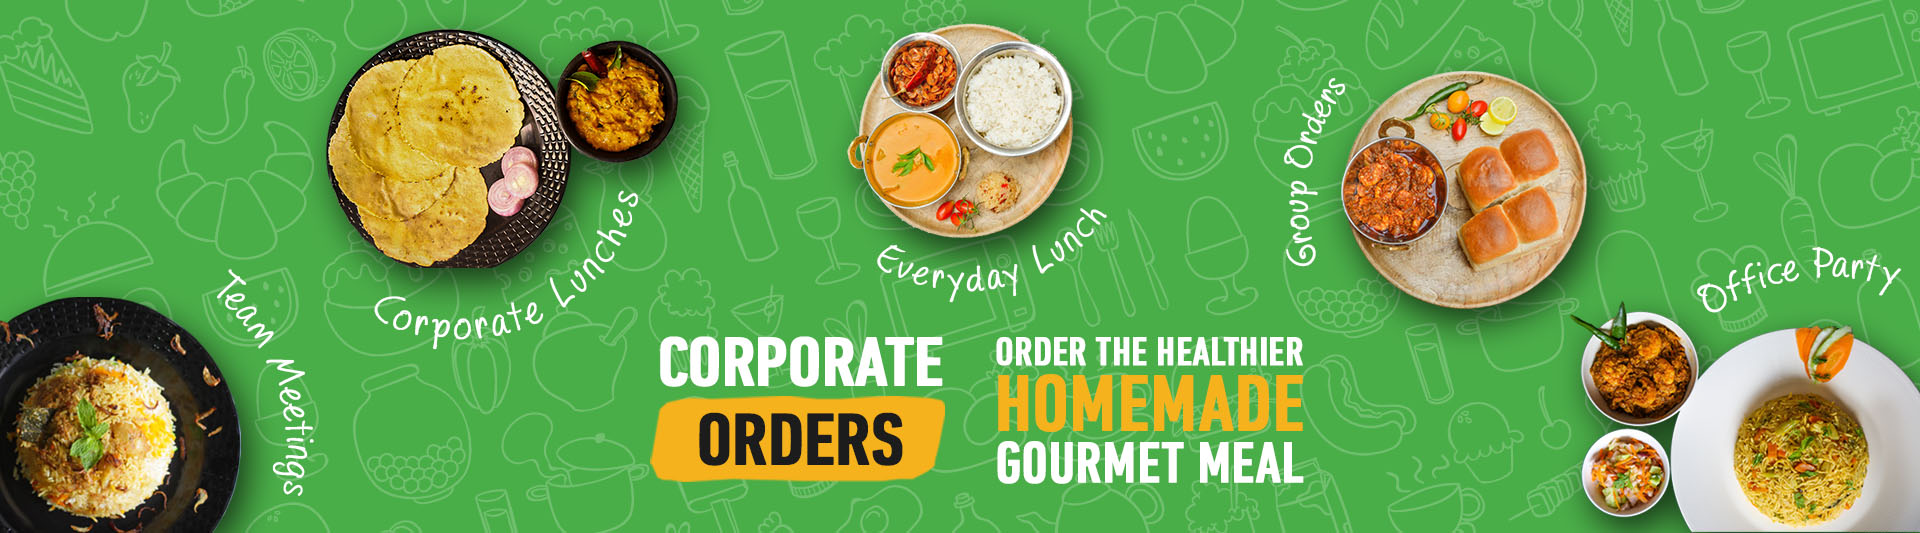 Corporate Food Delivery Service for Office - Bangalore, Kochi ... on can you wait, can you fly, can you come, can you read, can you get,